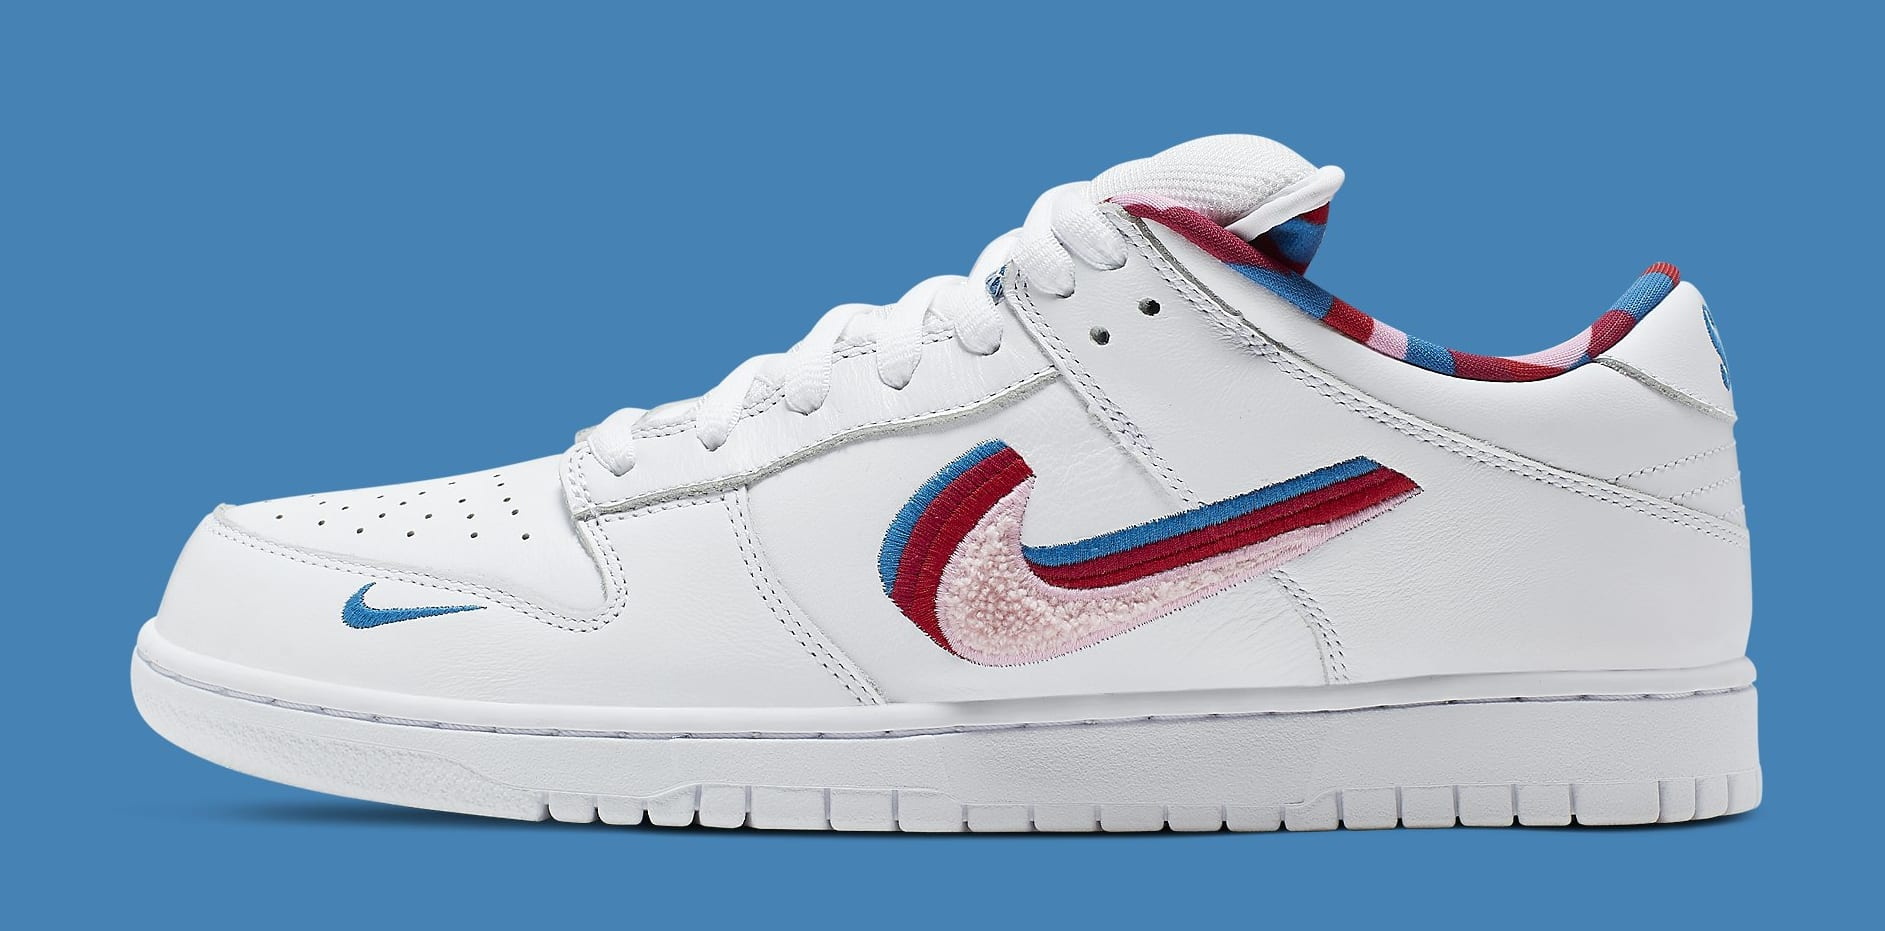 This Skate Shop Fooled Bots for the Parra x Nike SB Dunk